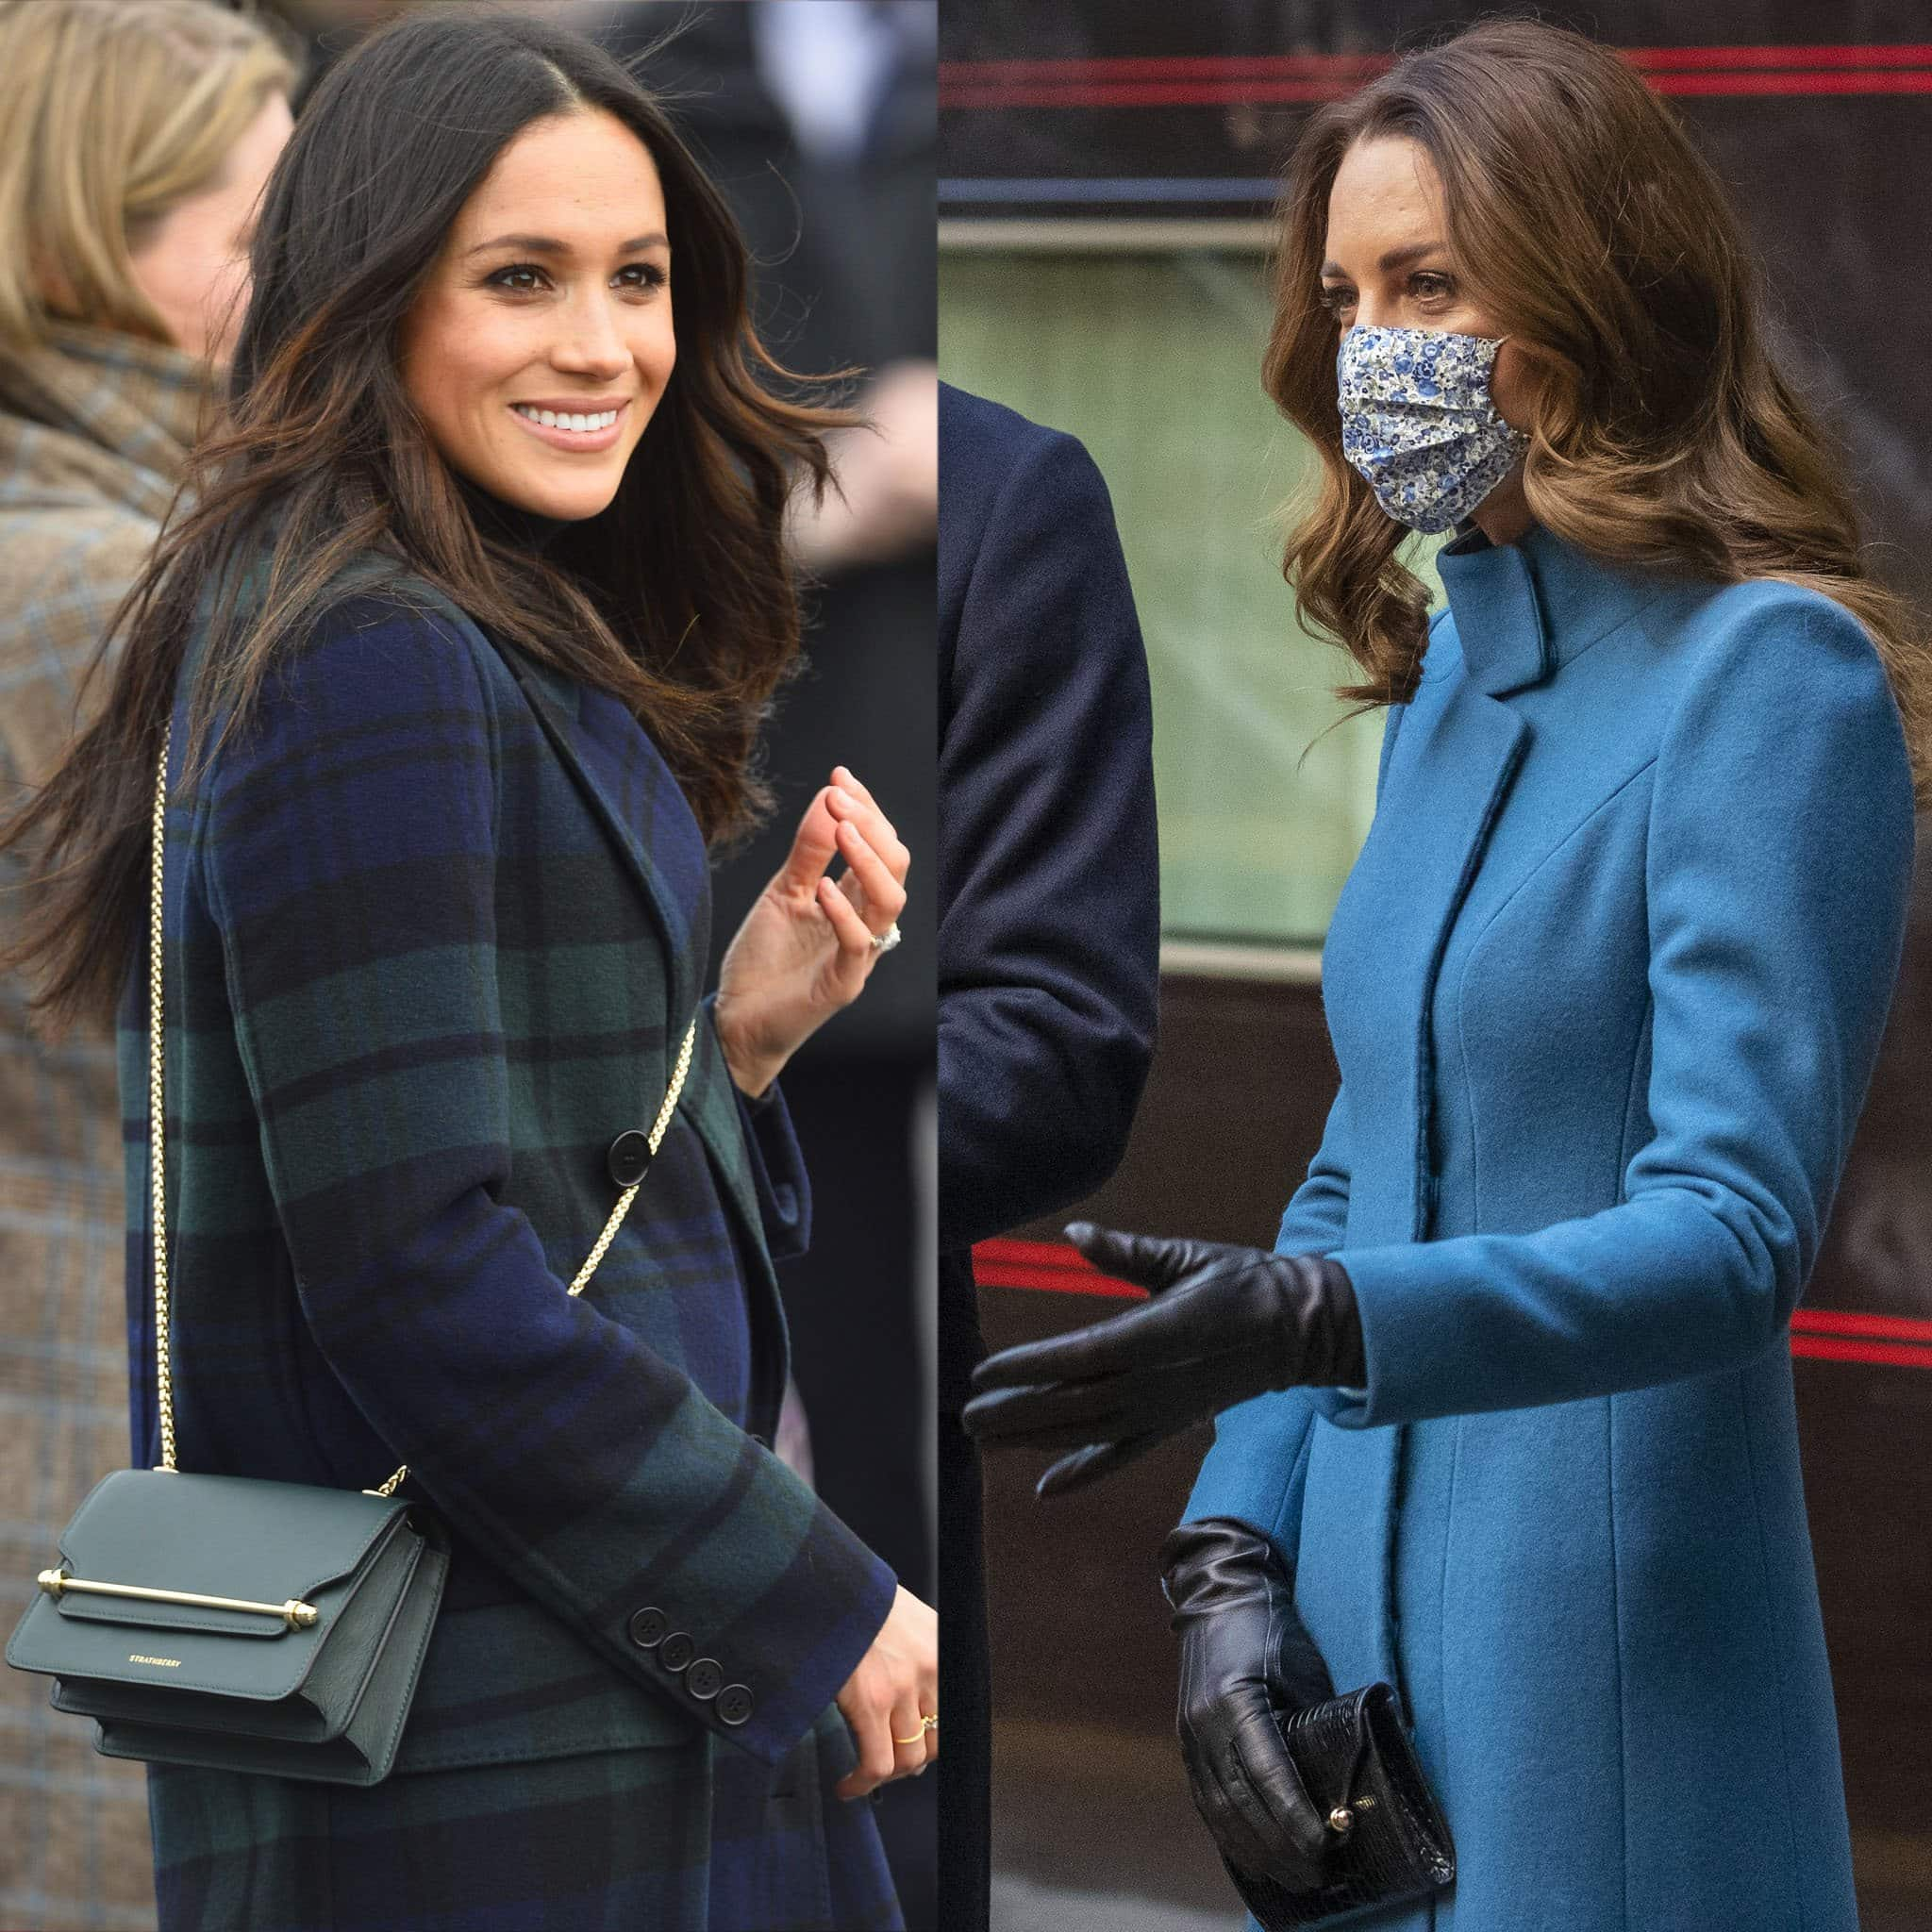 Meghan Markle, Duchess of Sussex, carries the East/West Mini bag, while Kate Middleton, Duchess of Cambridge, holds her Multrees Chain wallet